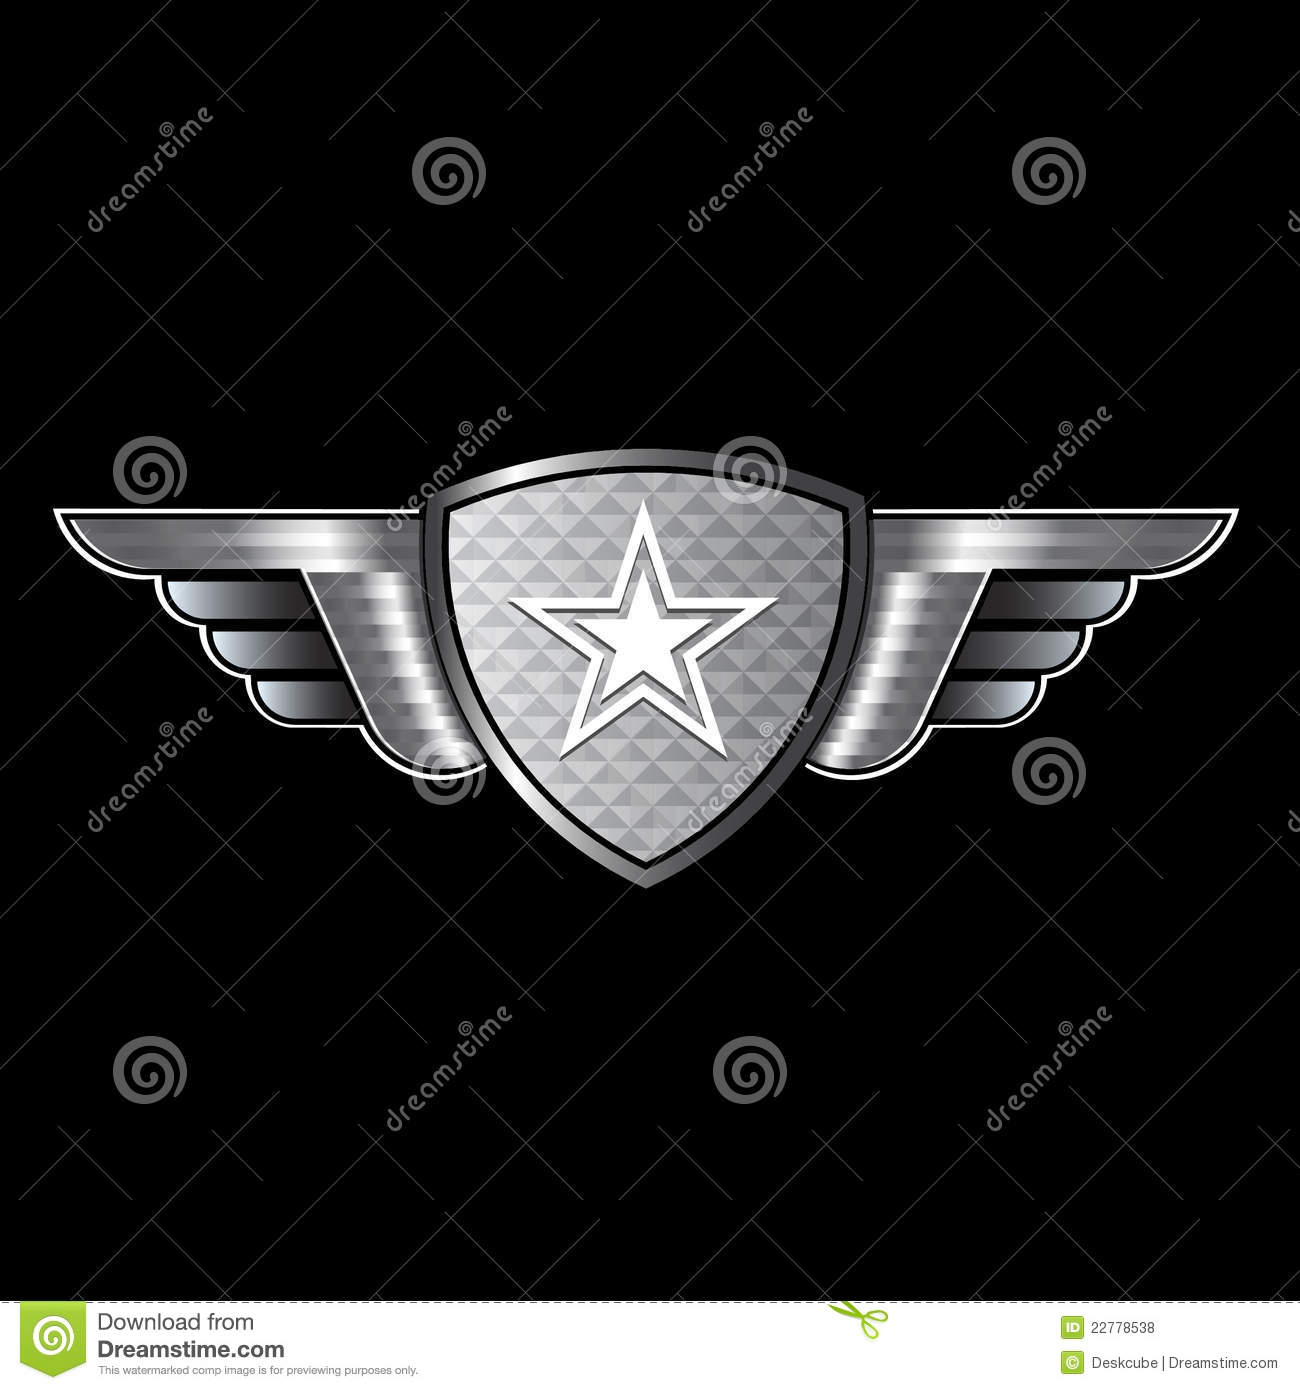 Shield with wings and star logo stock vector illustration of shield with wings and star logo biocorpaavc Choice Image